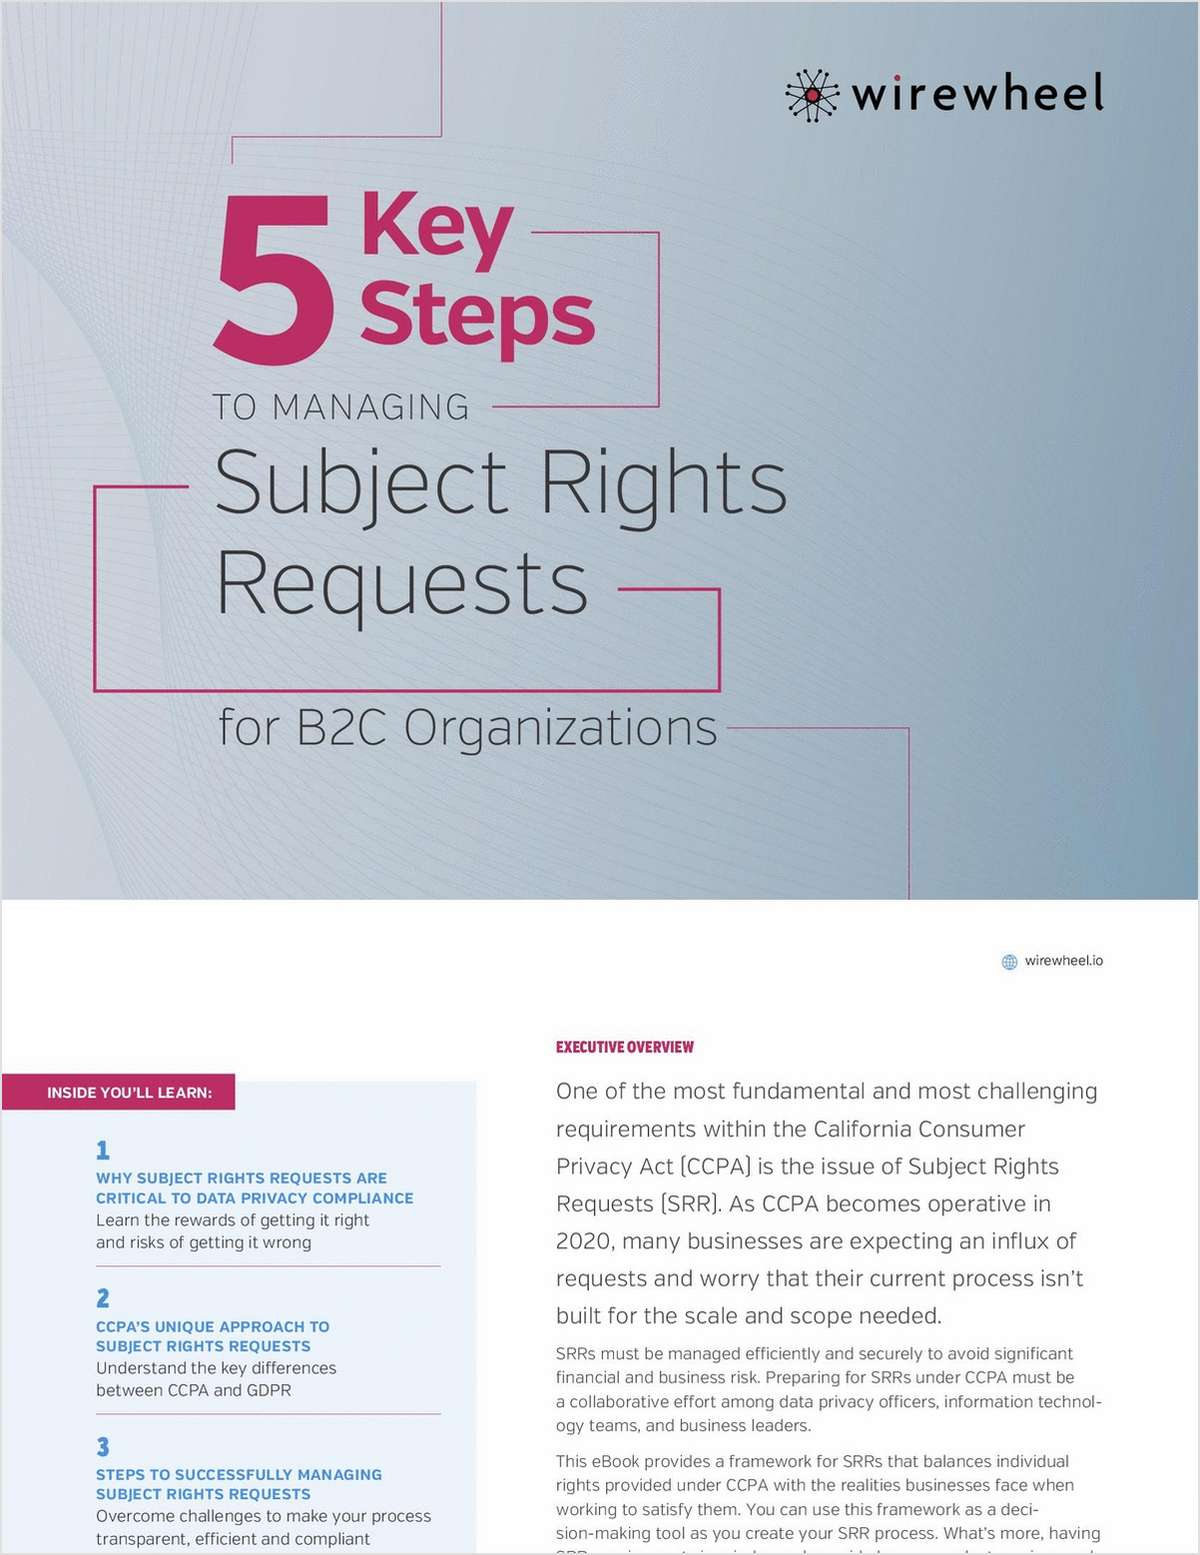 5 Key Steps To Managing Subject Rights Requests for B2C Organizations